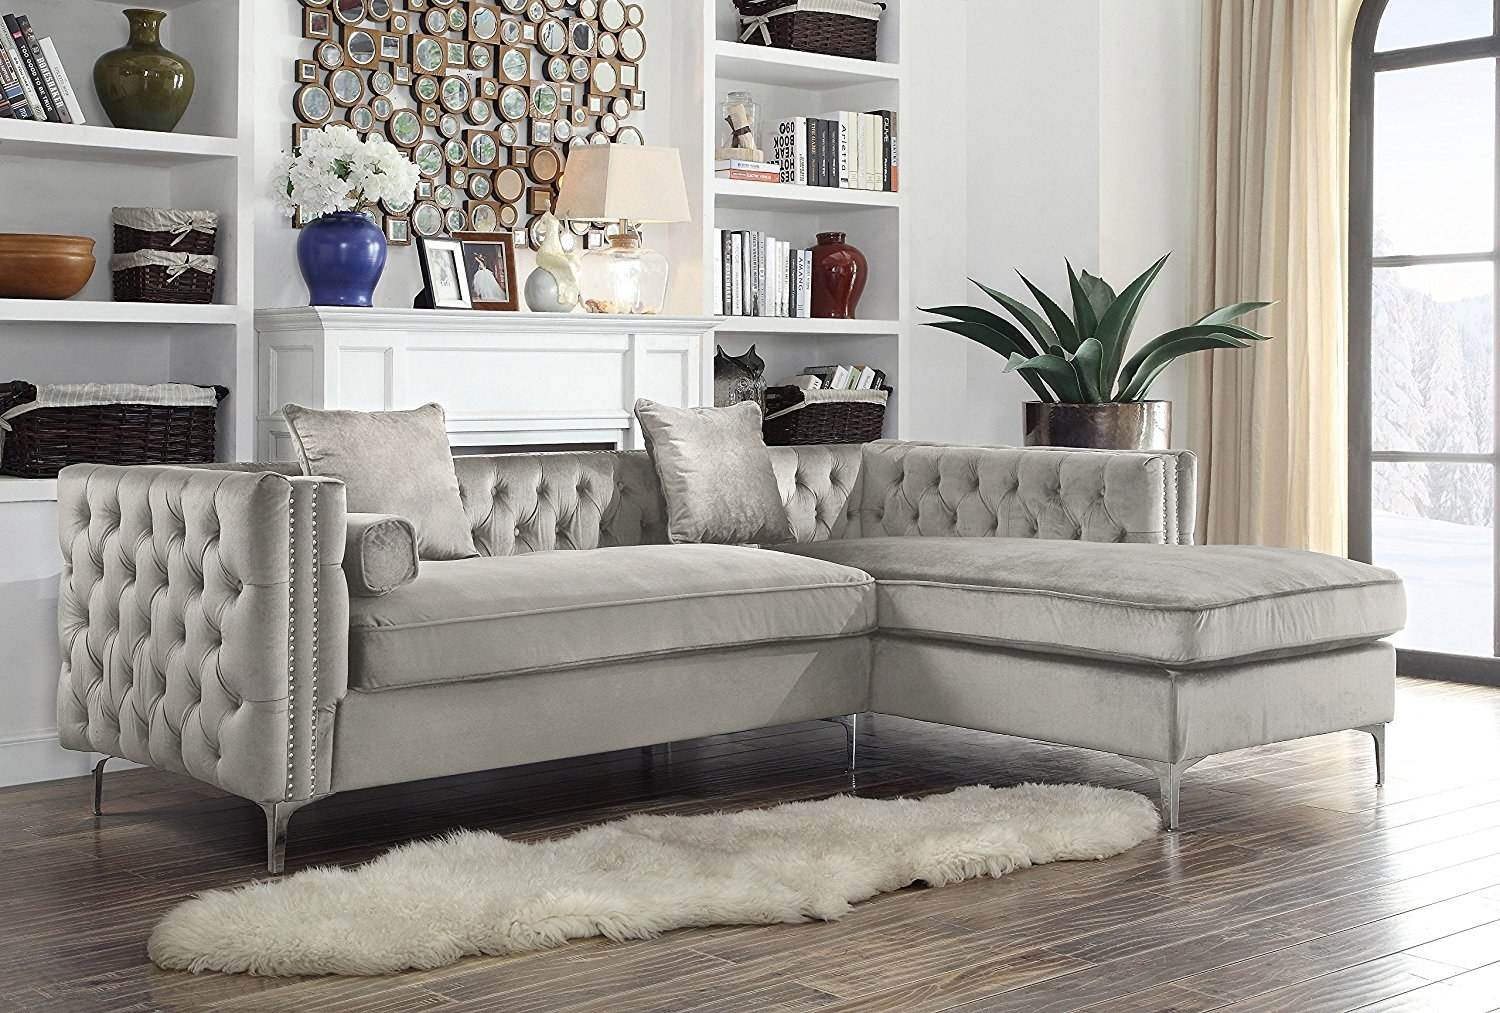 1. A Contemporary Velvet Sectional For Turning Your Living Space Into The  Most Beautiful Spot Ever.